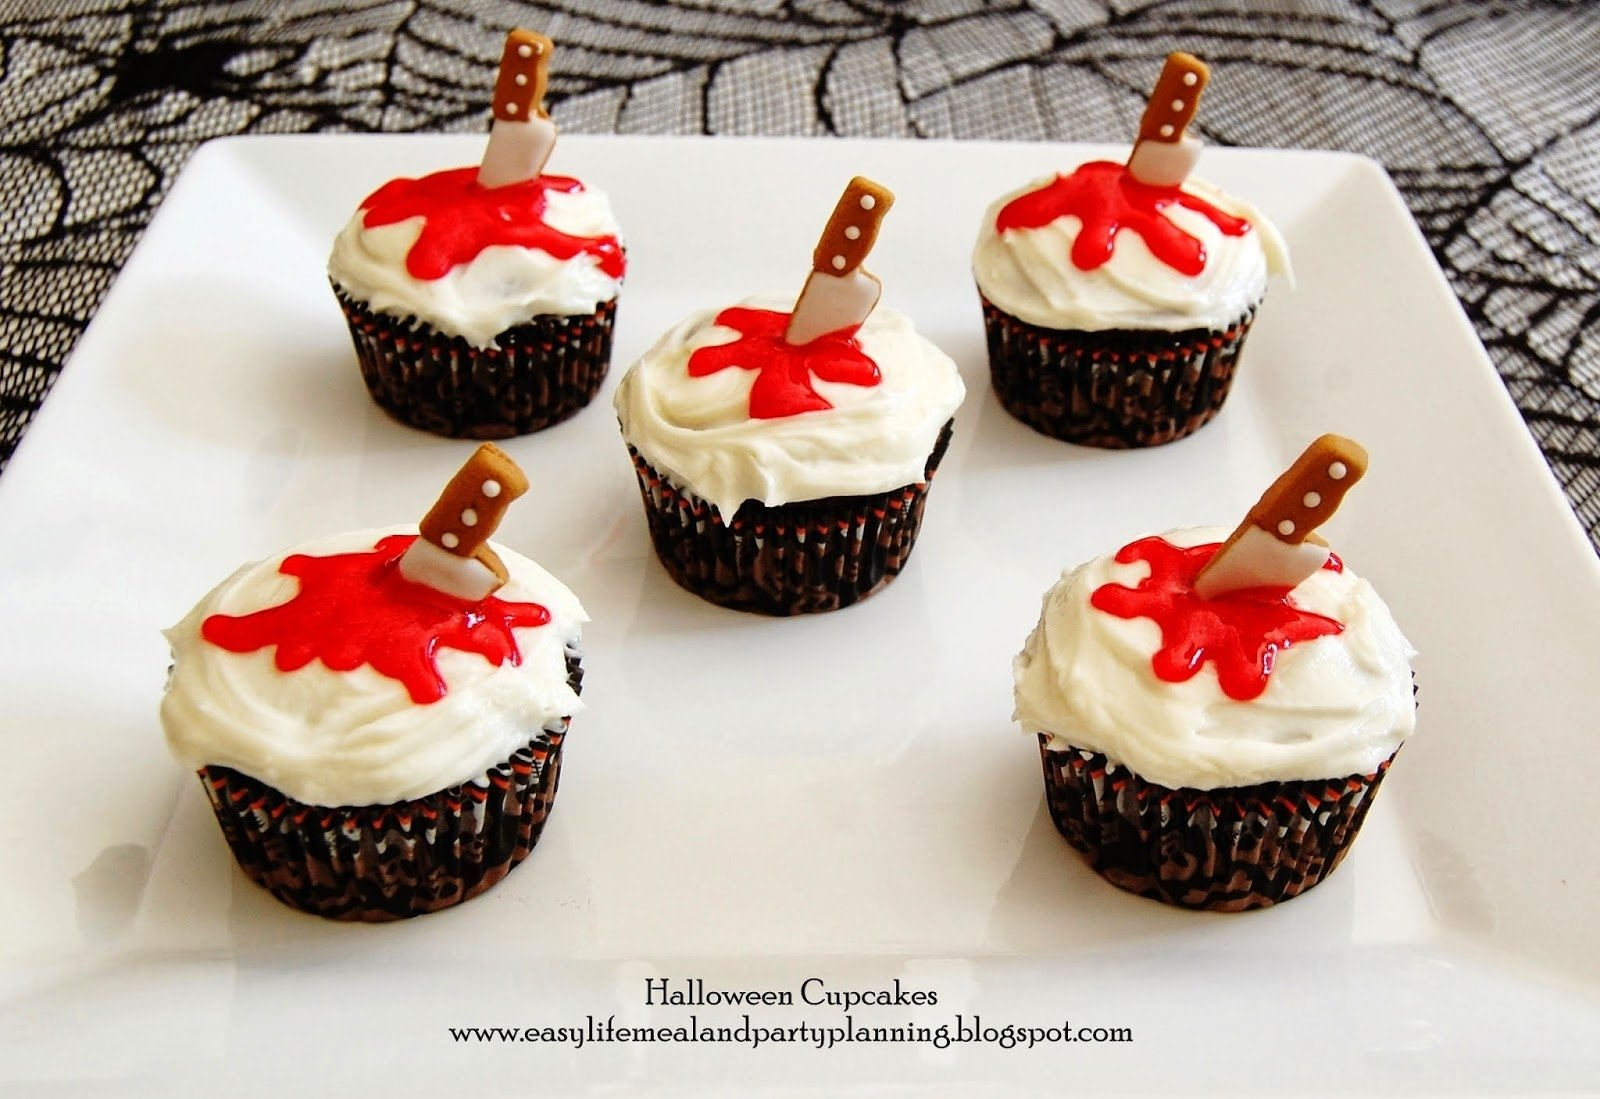 10 Beautiful Easy Halloween Cake Decorating Ideas easy life meal and party planning halloween cupcake toppers 2020